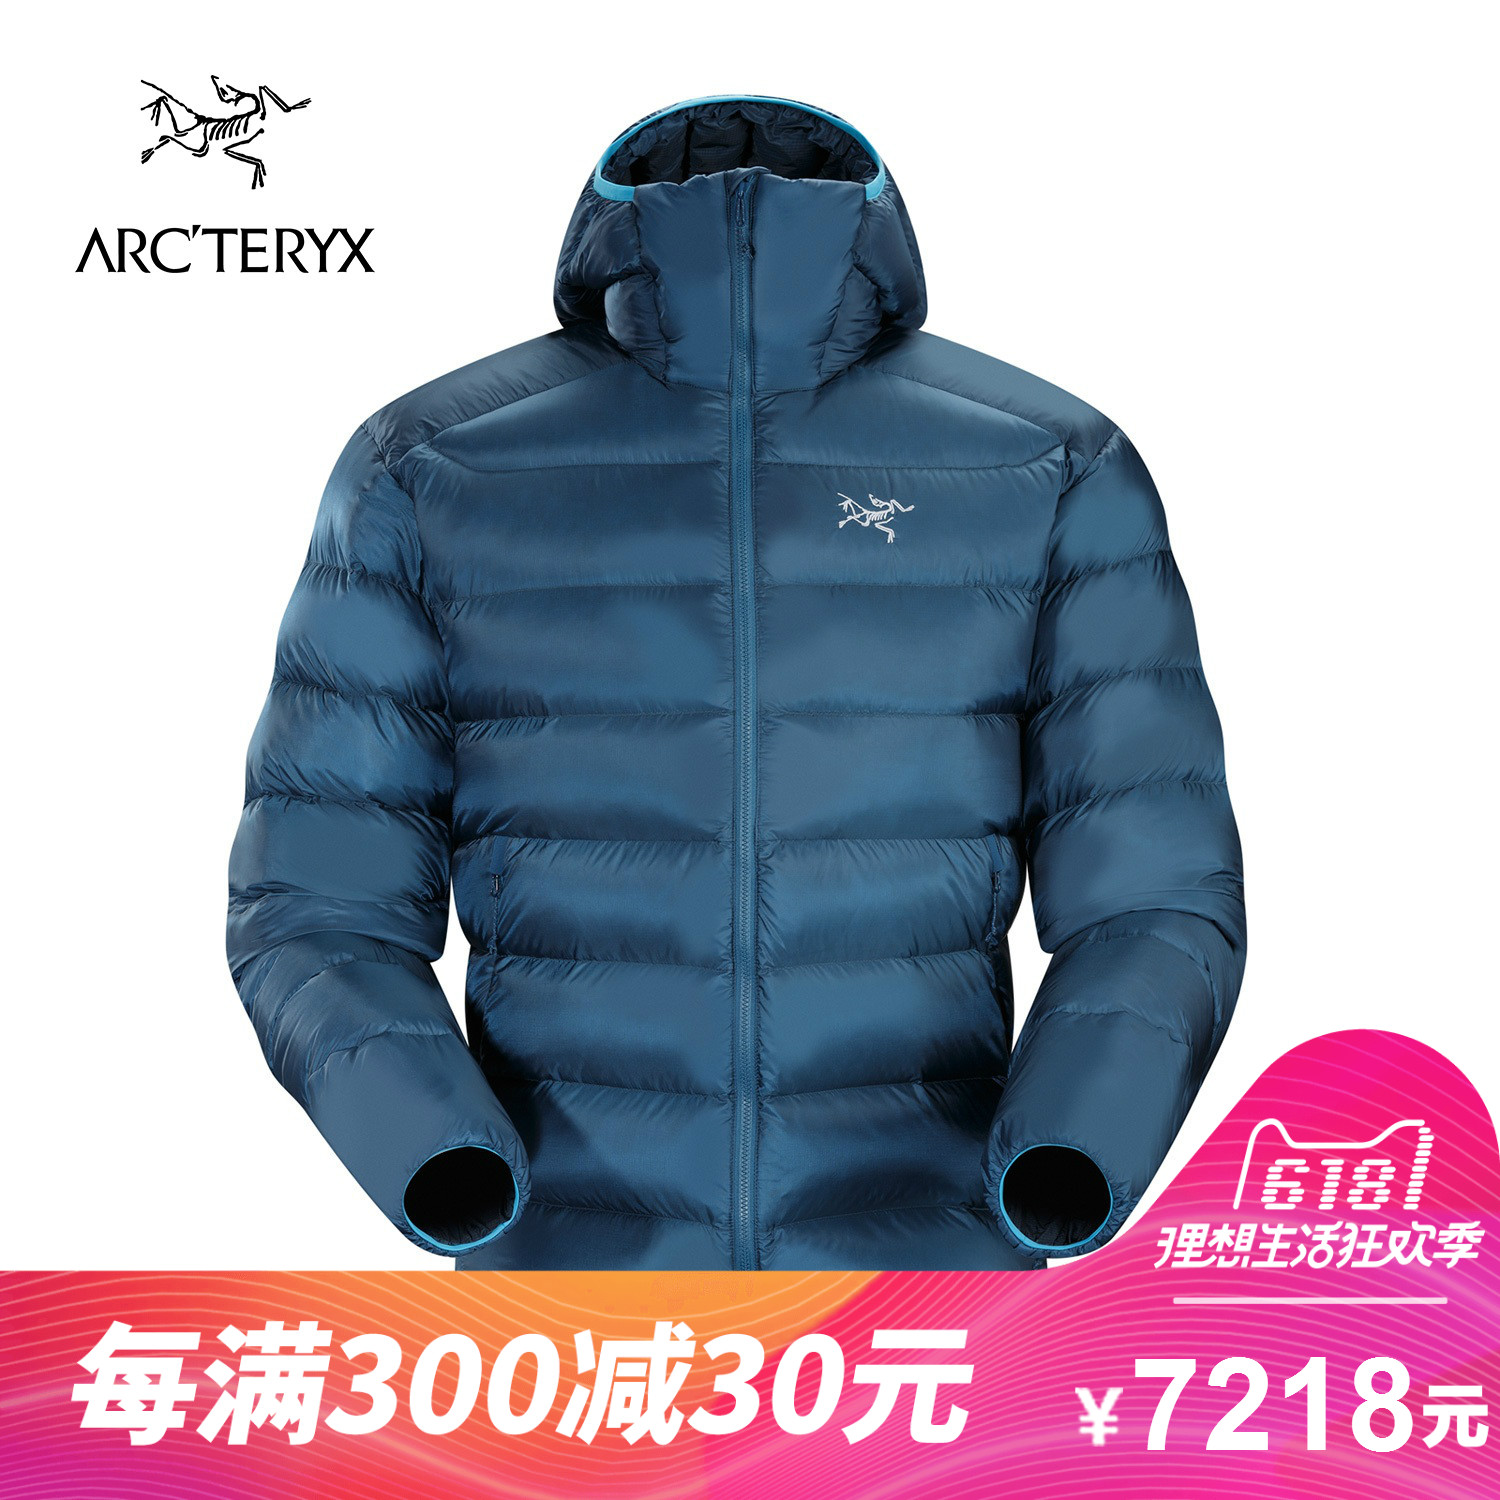 ARCTERYX/Archaeopteryx Men's Outdoor Lightweight Windbreak Warm Down Suit Cerium SV 14651